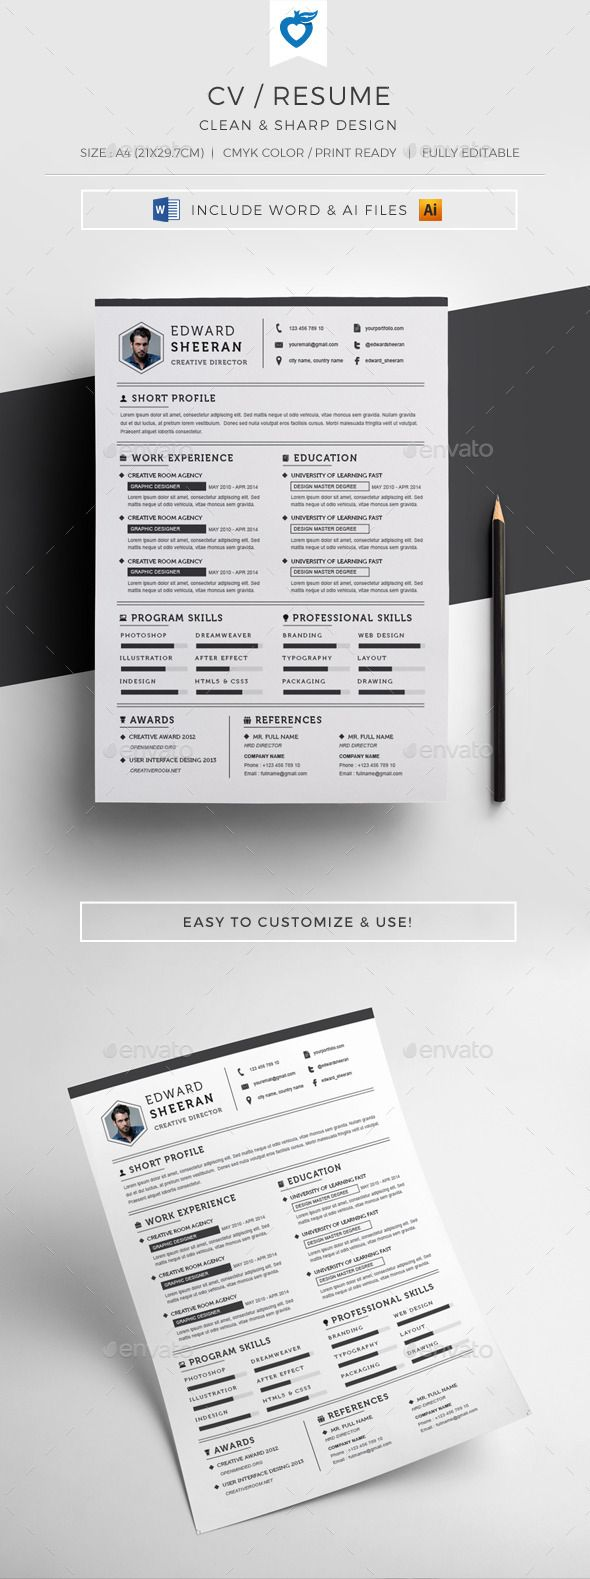 Resume Cv Templates Free Download%0A North America Road Map Atlas